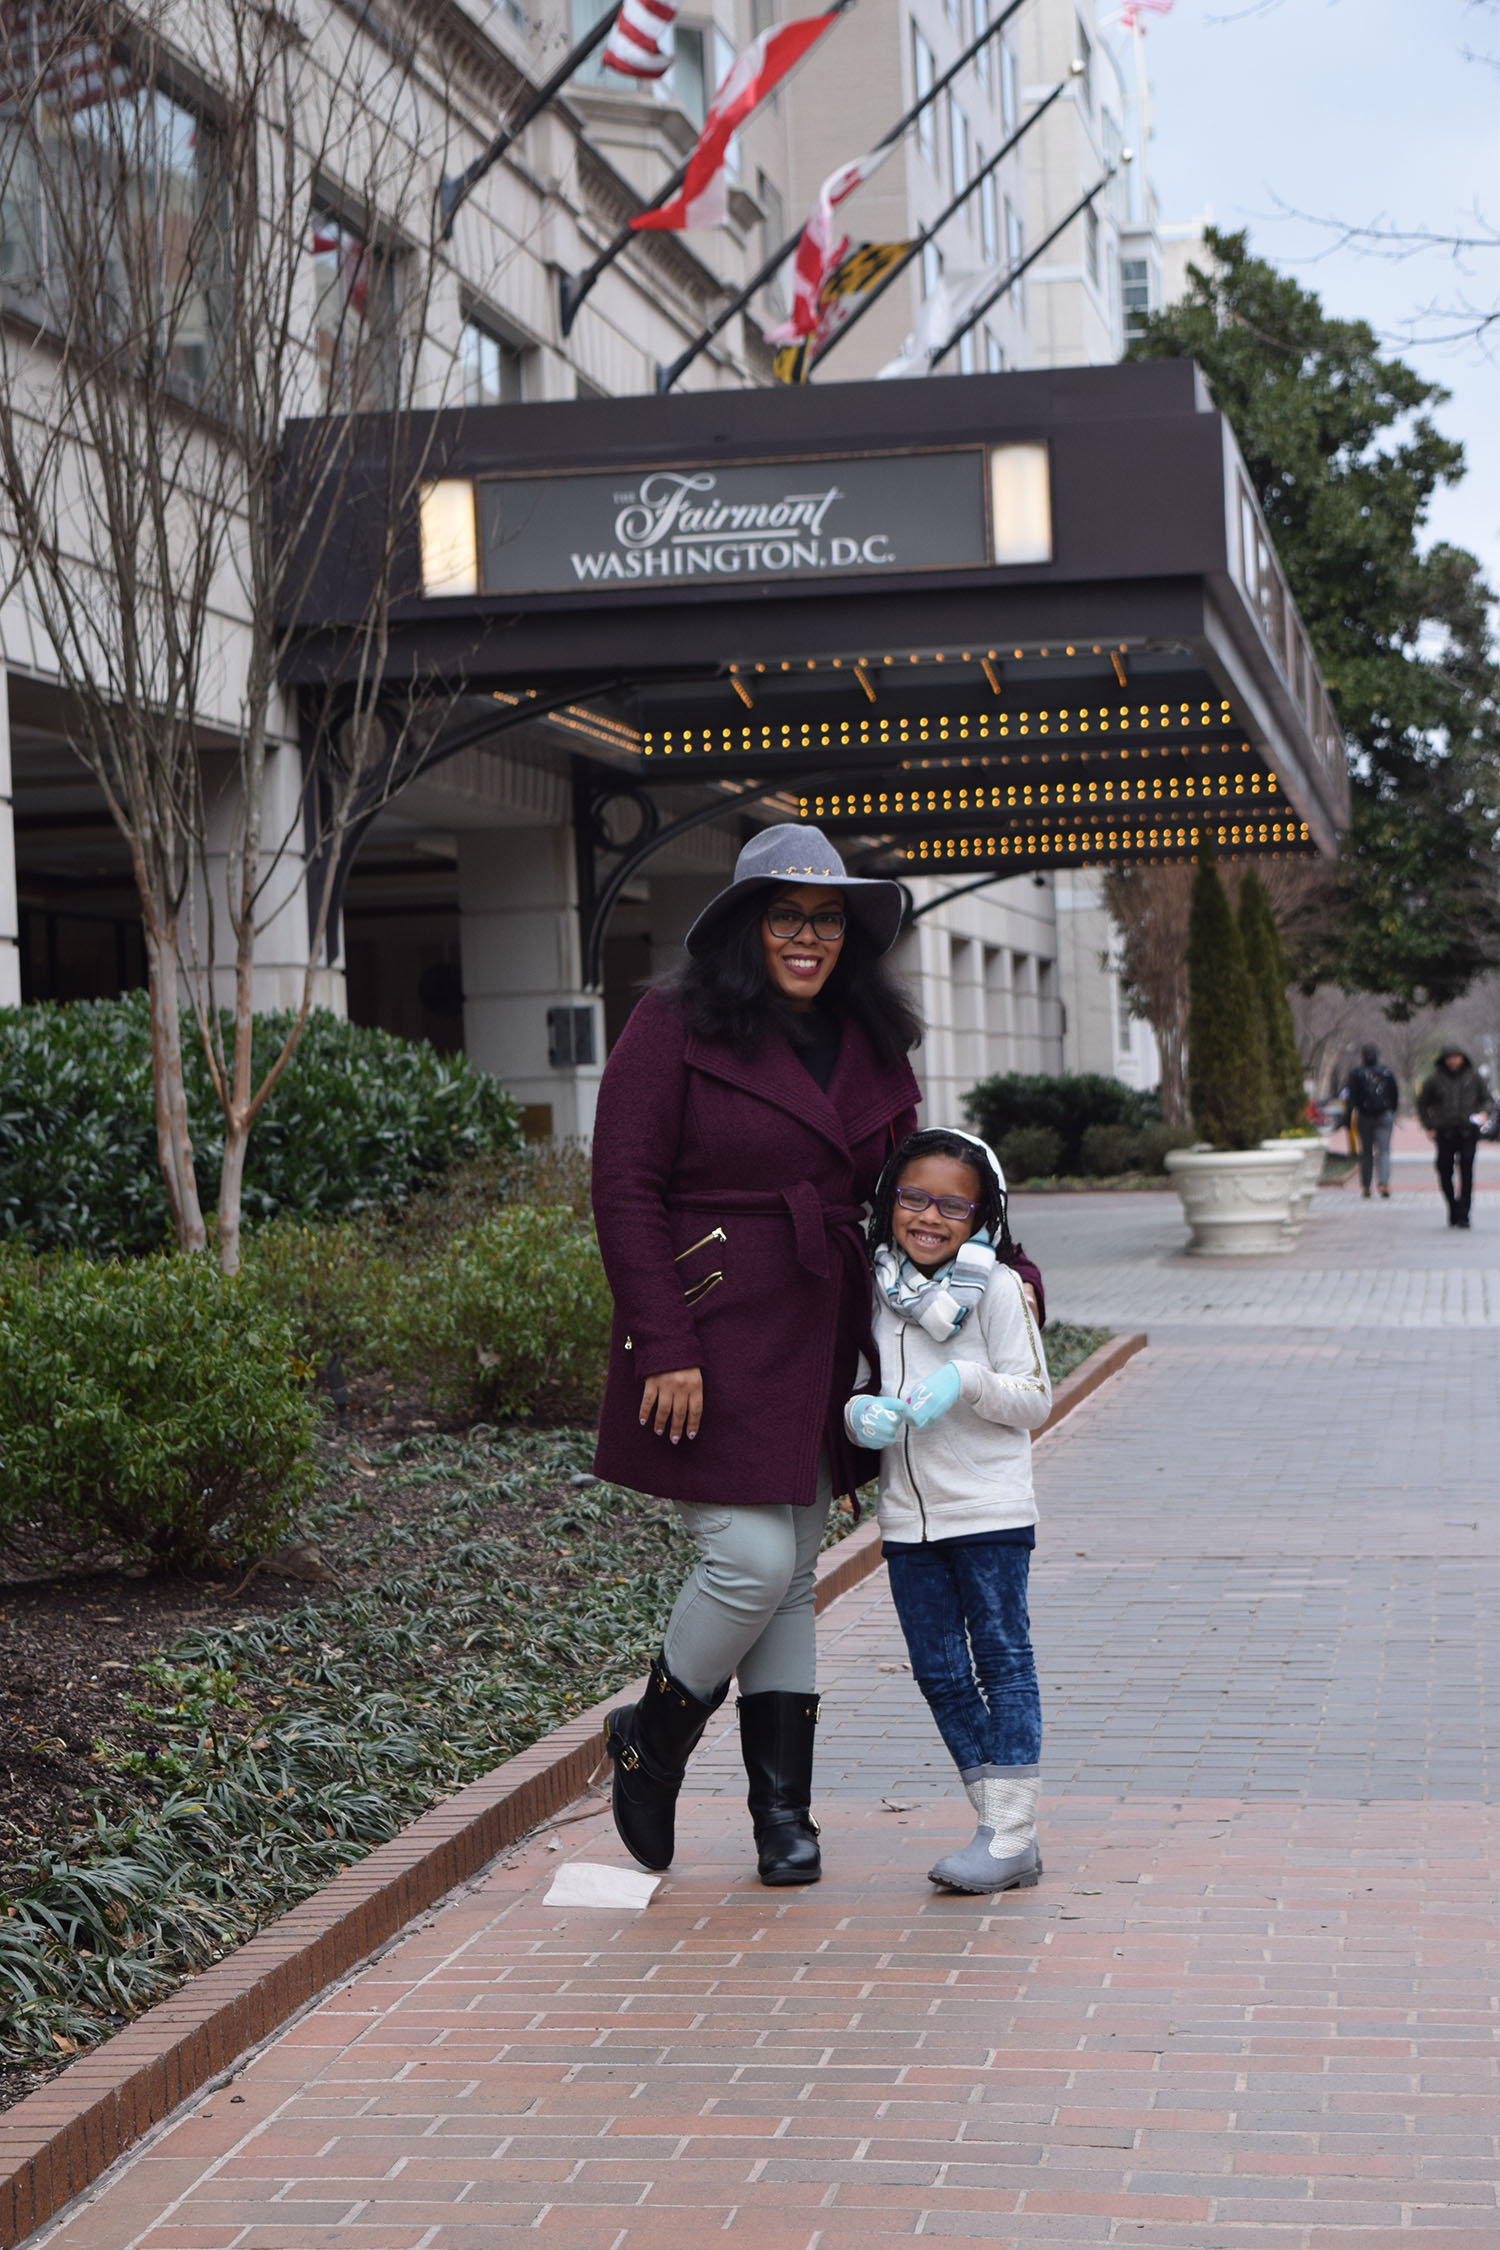 A Weekend in DC at The Fairmont Hotel